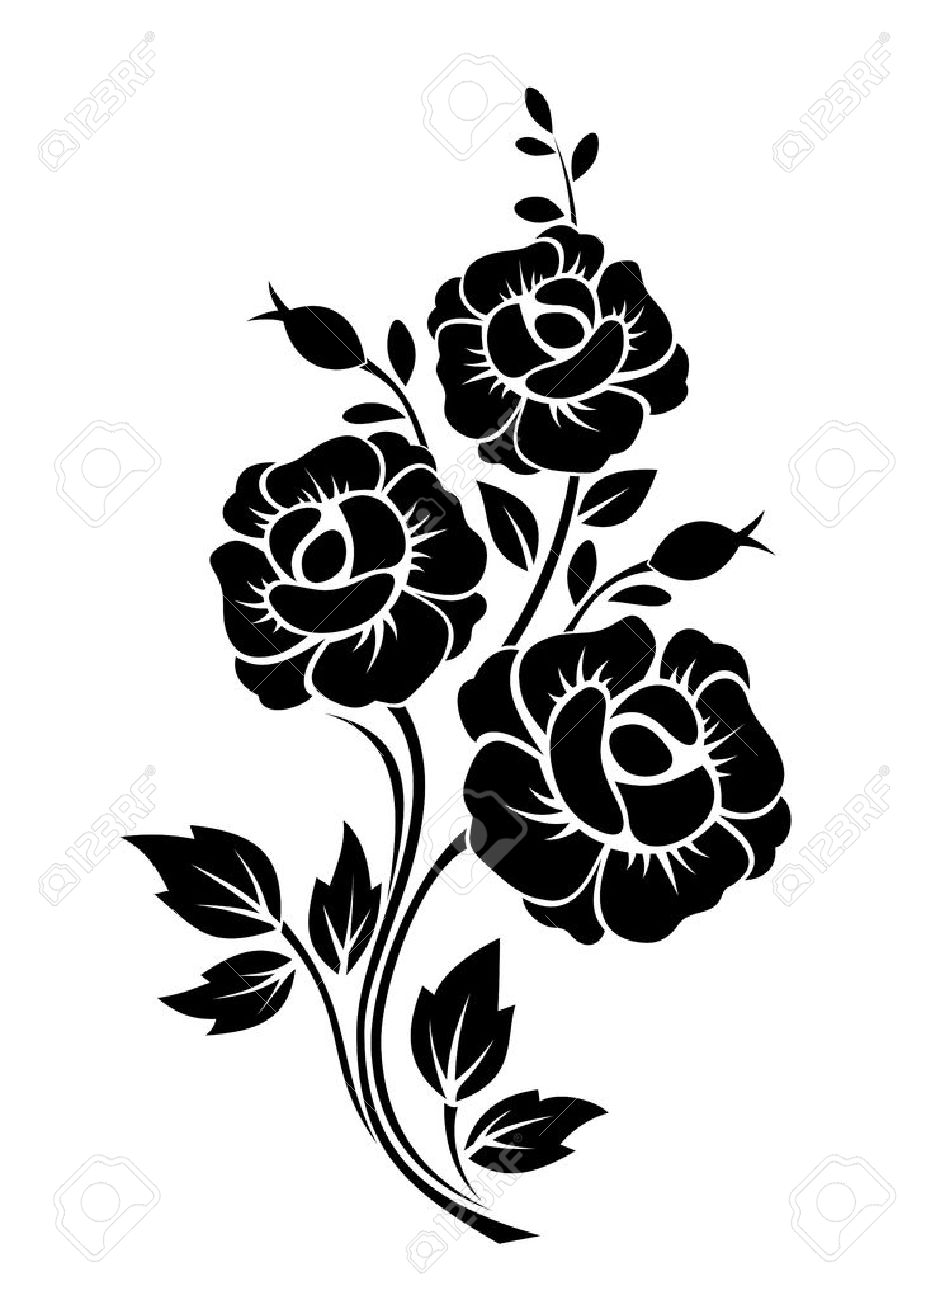 branch with flowers vector black silhouette royalty free cliparts rh 123rf com vector flower bouquet vector flower wreath